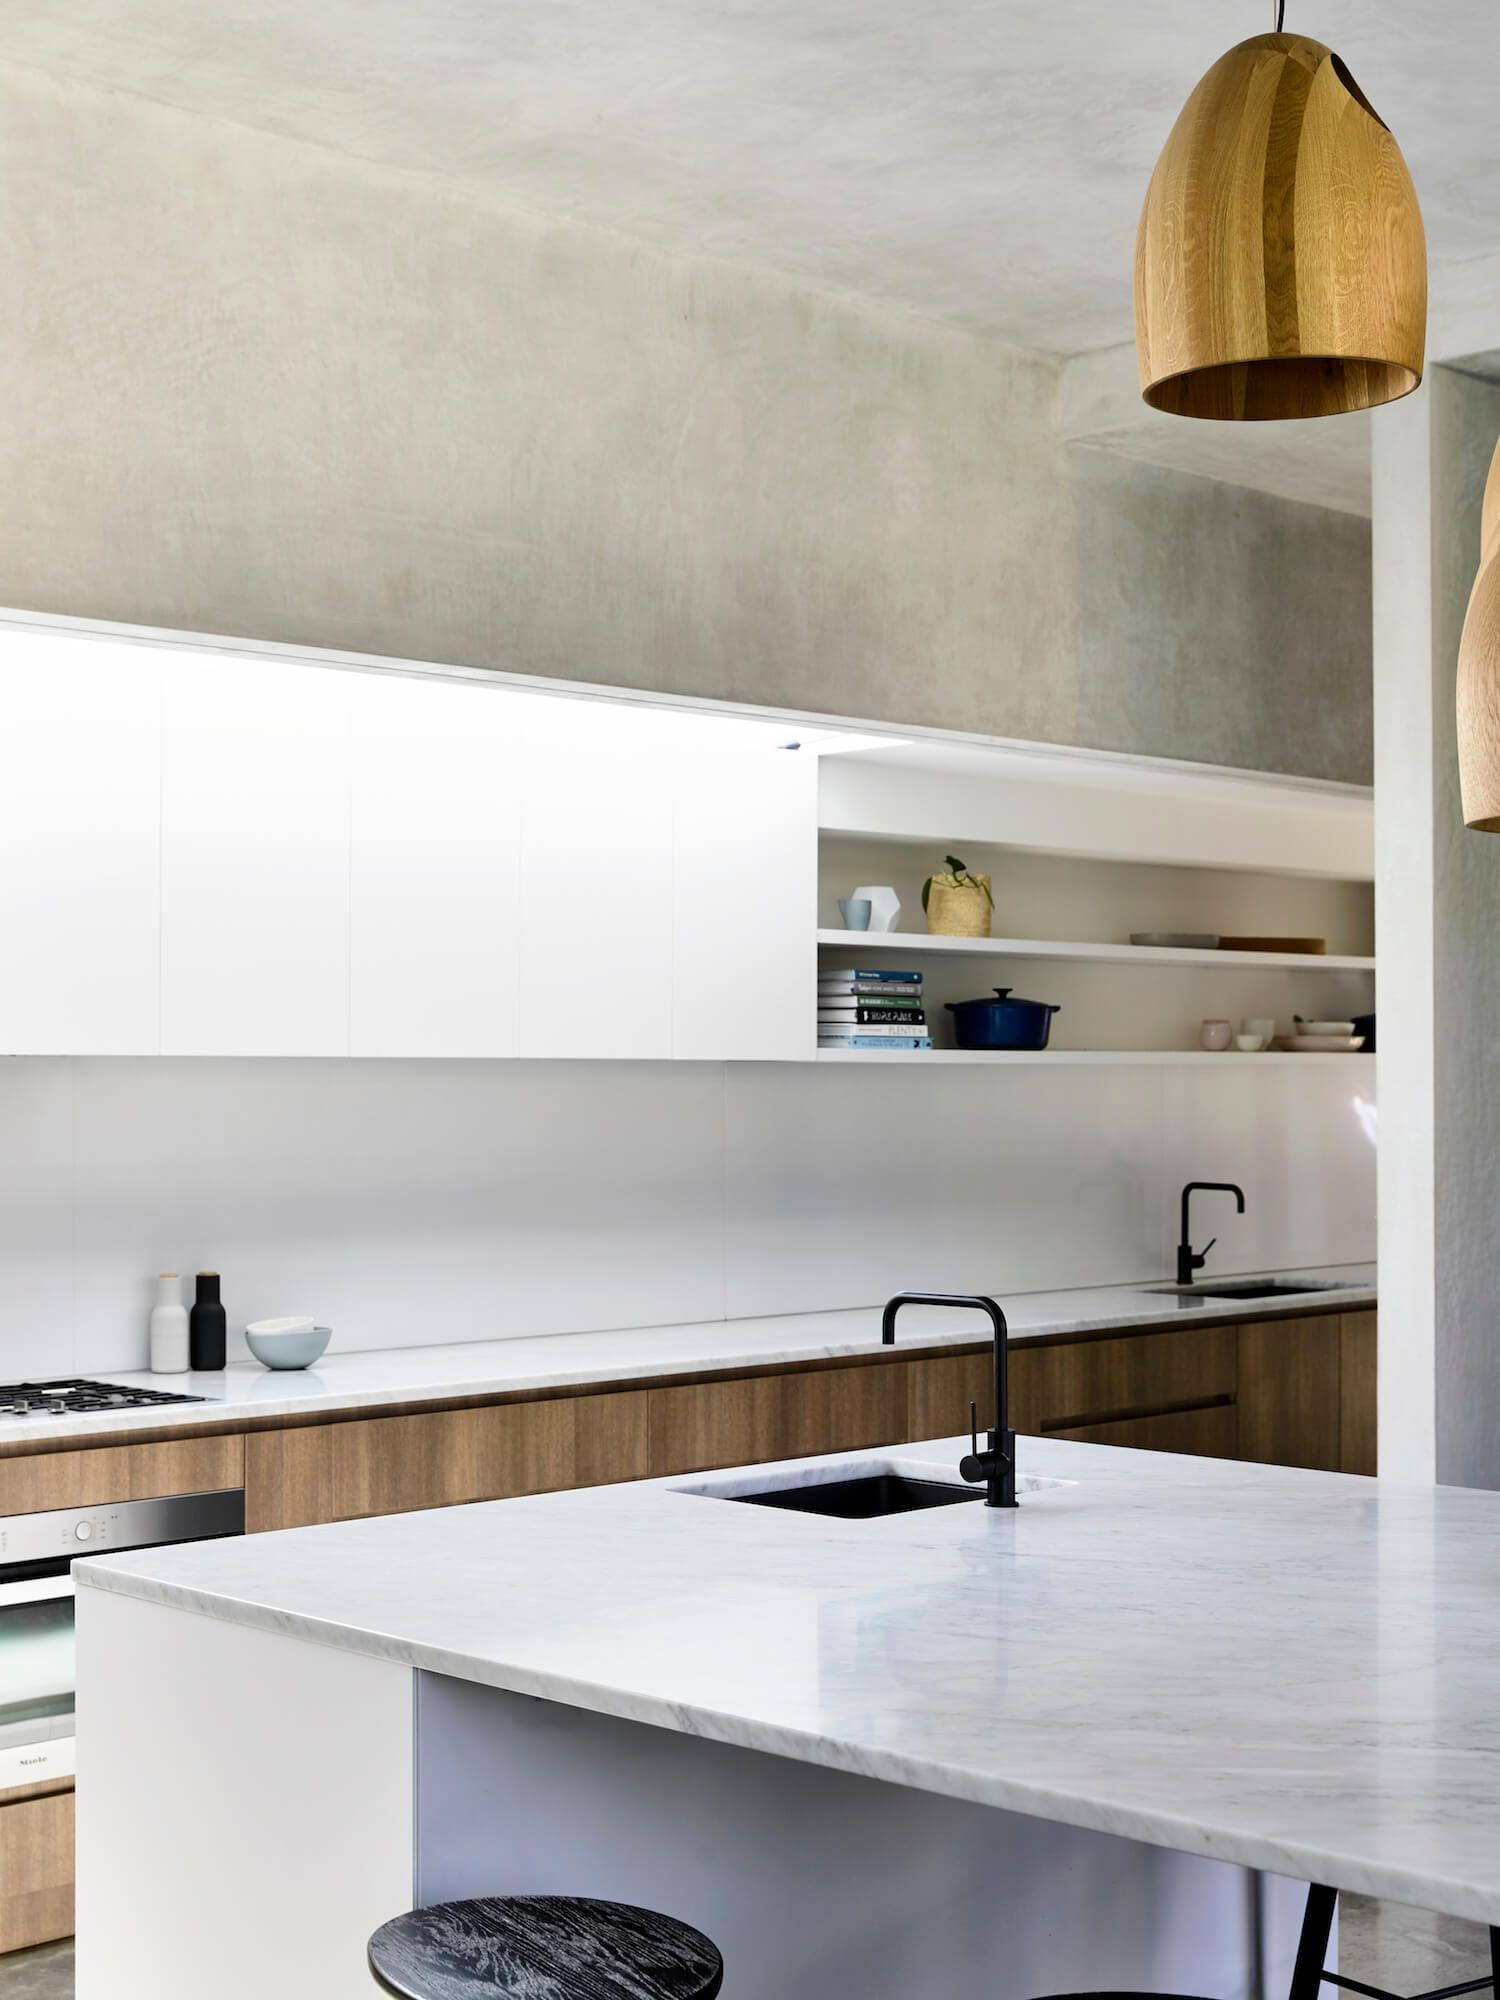 Hawthorn House by Heartly   House, Kitchens and Space kitchen